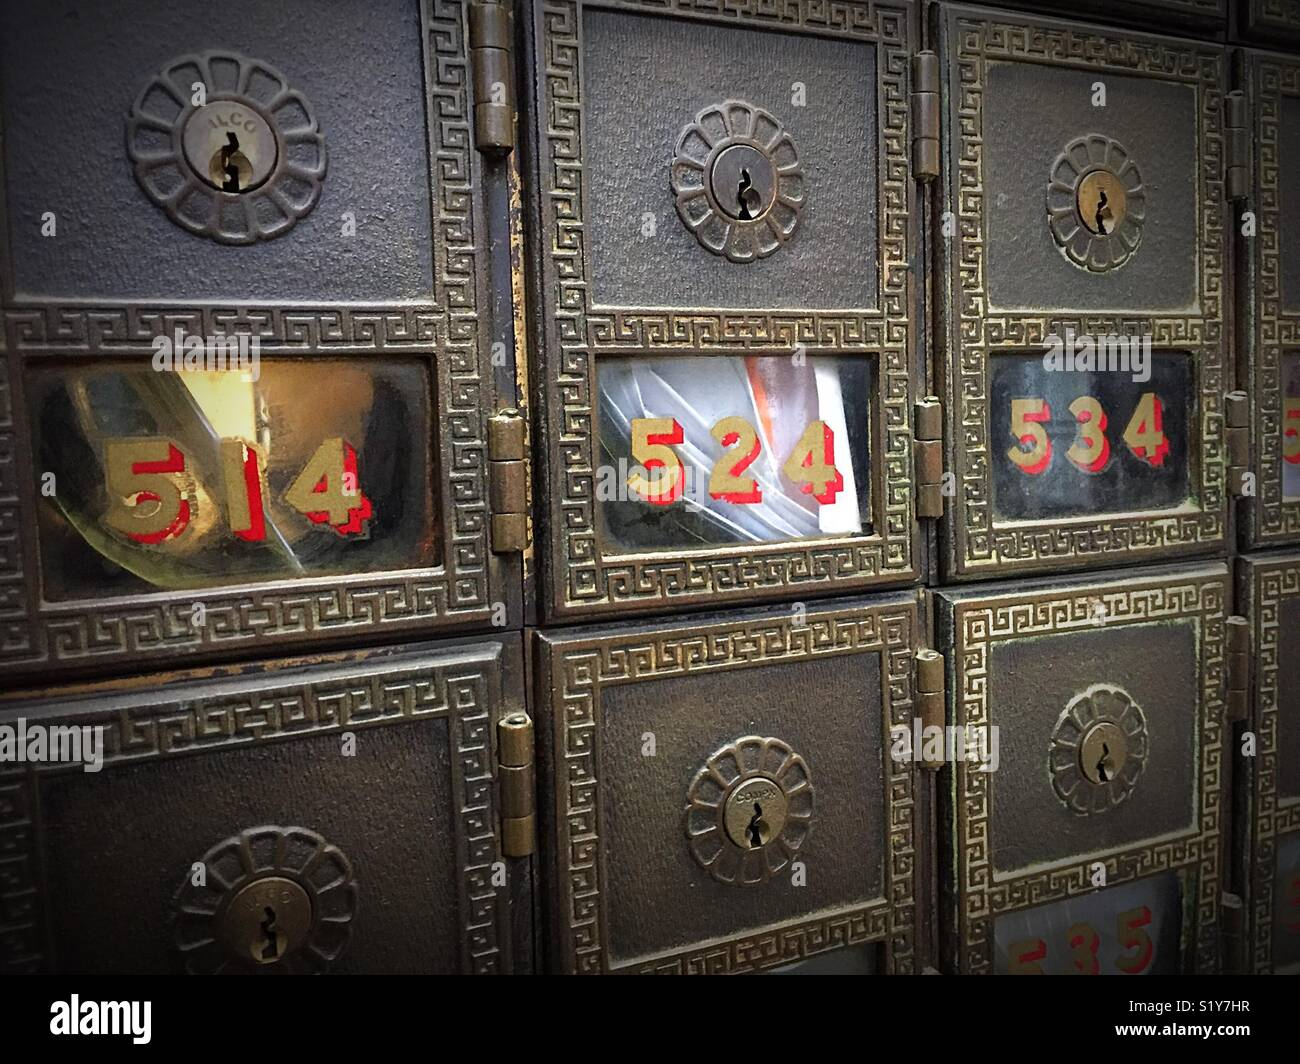 Vintage Decorative Post Office Boxes With Glass Doors In The US Post Office,  USA